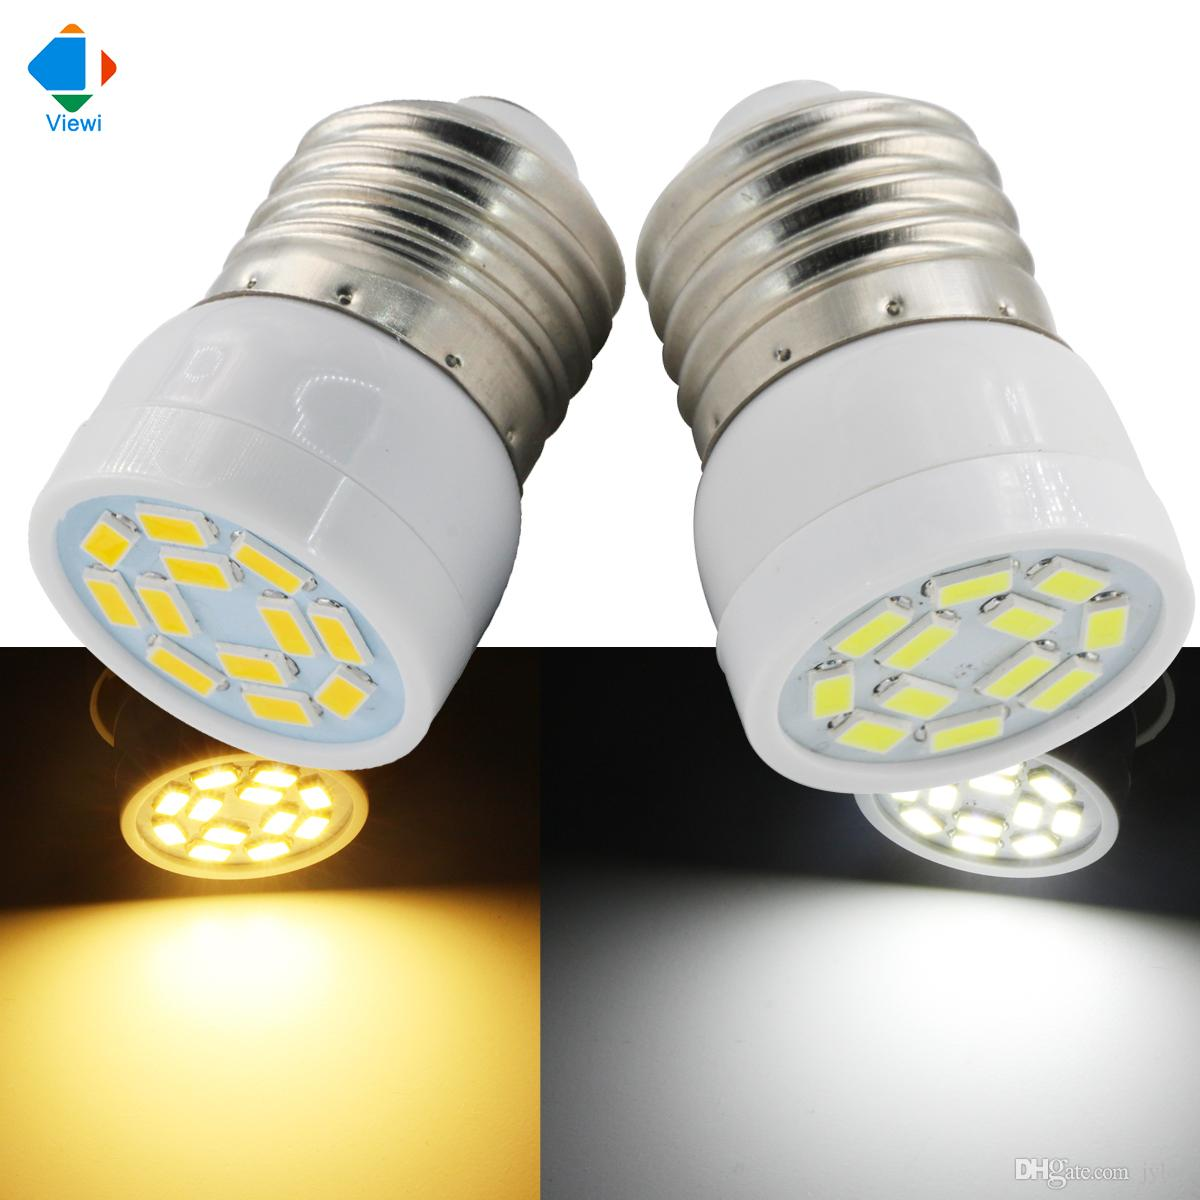 5x Lampada Led Lamp E27 Small Super Led Bulb Light For Home 110v 220v Smd  5730 12 Leds Energy Saving Lampe Mini Ampolletas Halogen Light Bulbs Led  Light ...